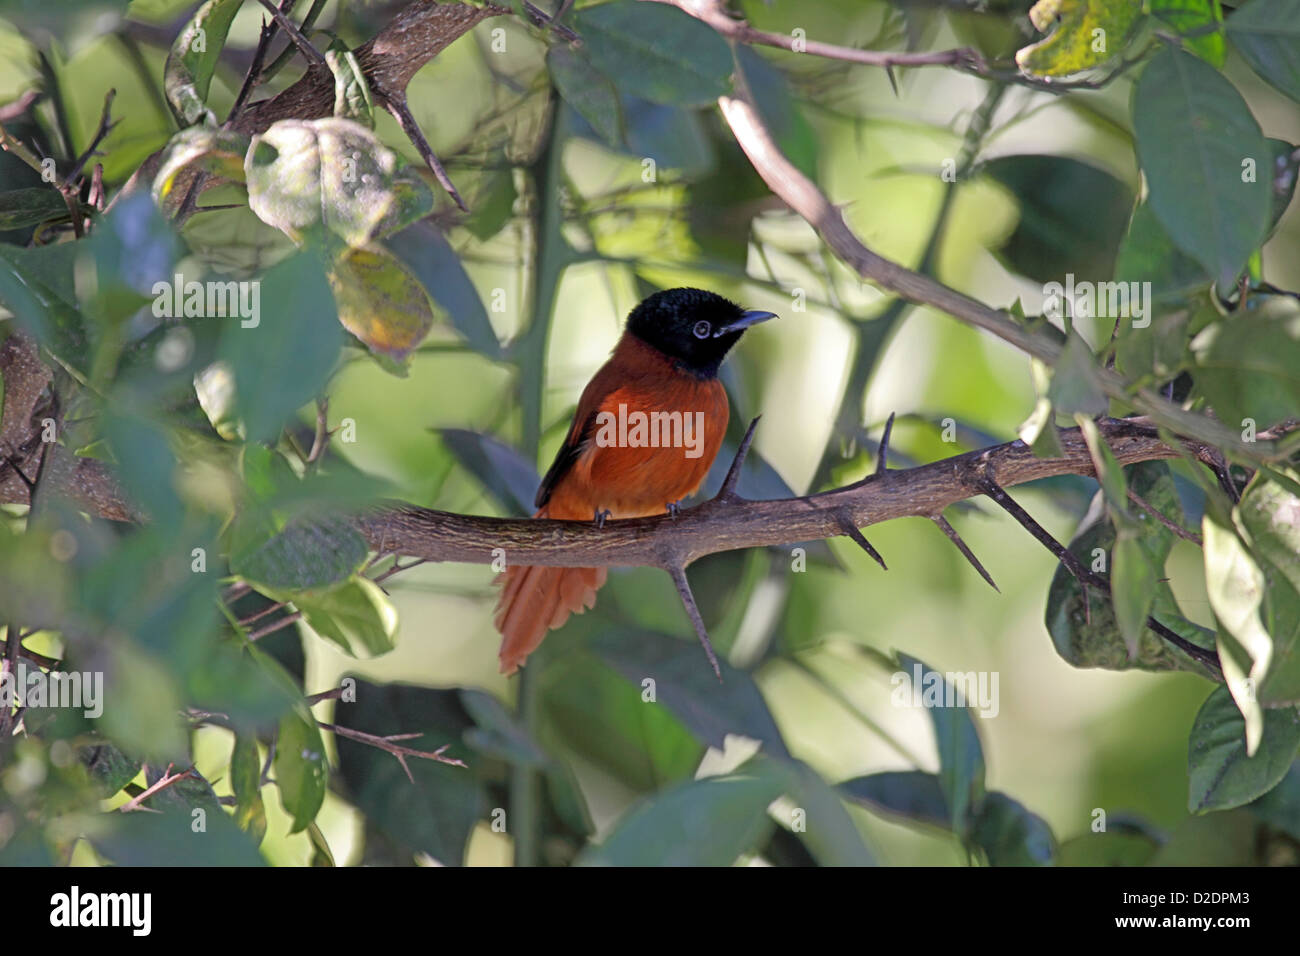 Red bellied paradise flycatcher in The gambia Stock Photo